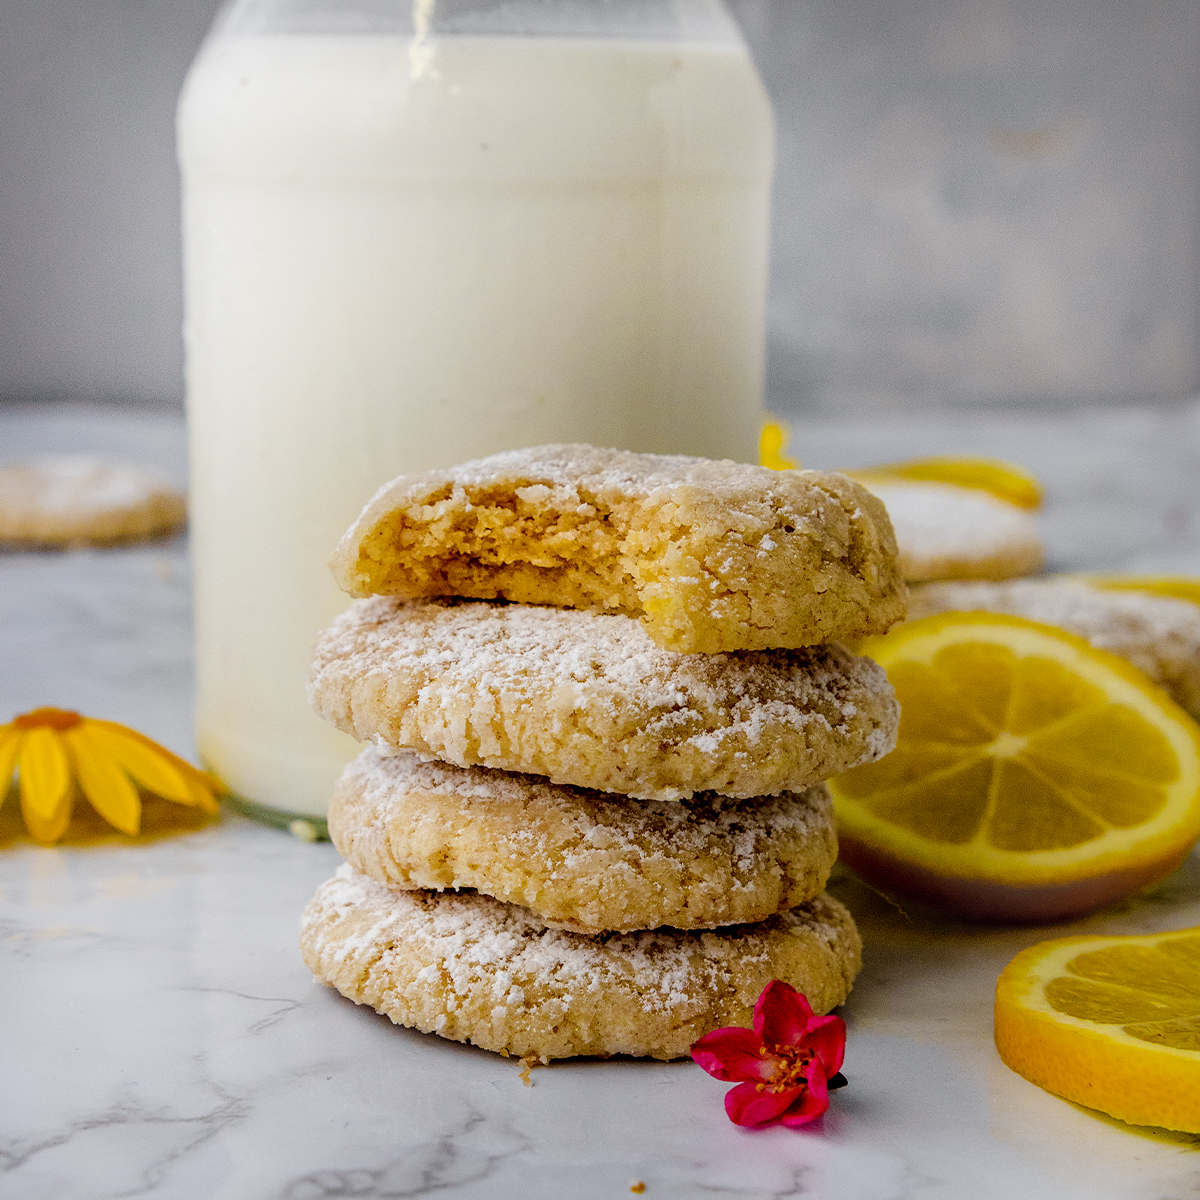 stack of bright vegan lemon crinkle cookies with a bite taken out next to a glass of milk